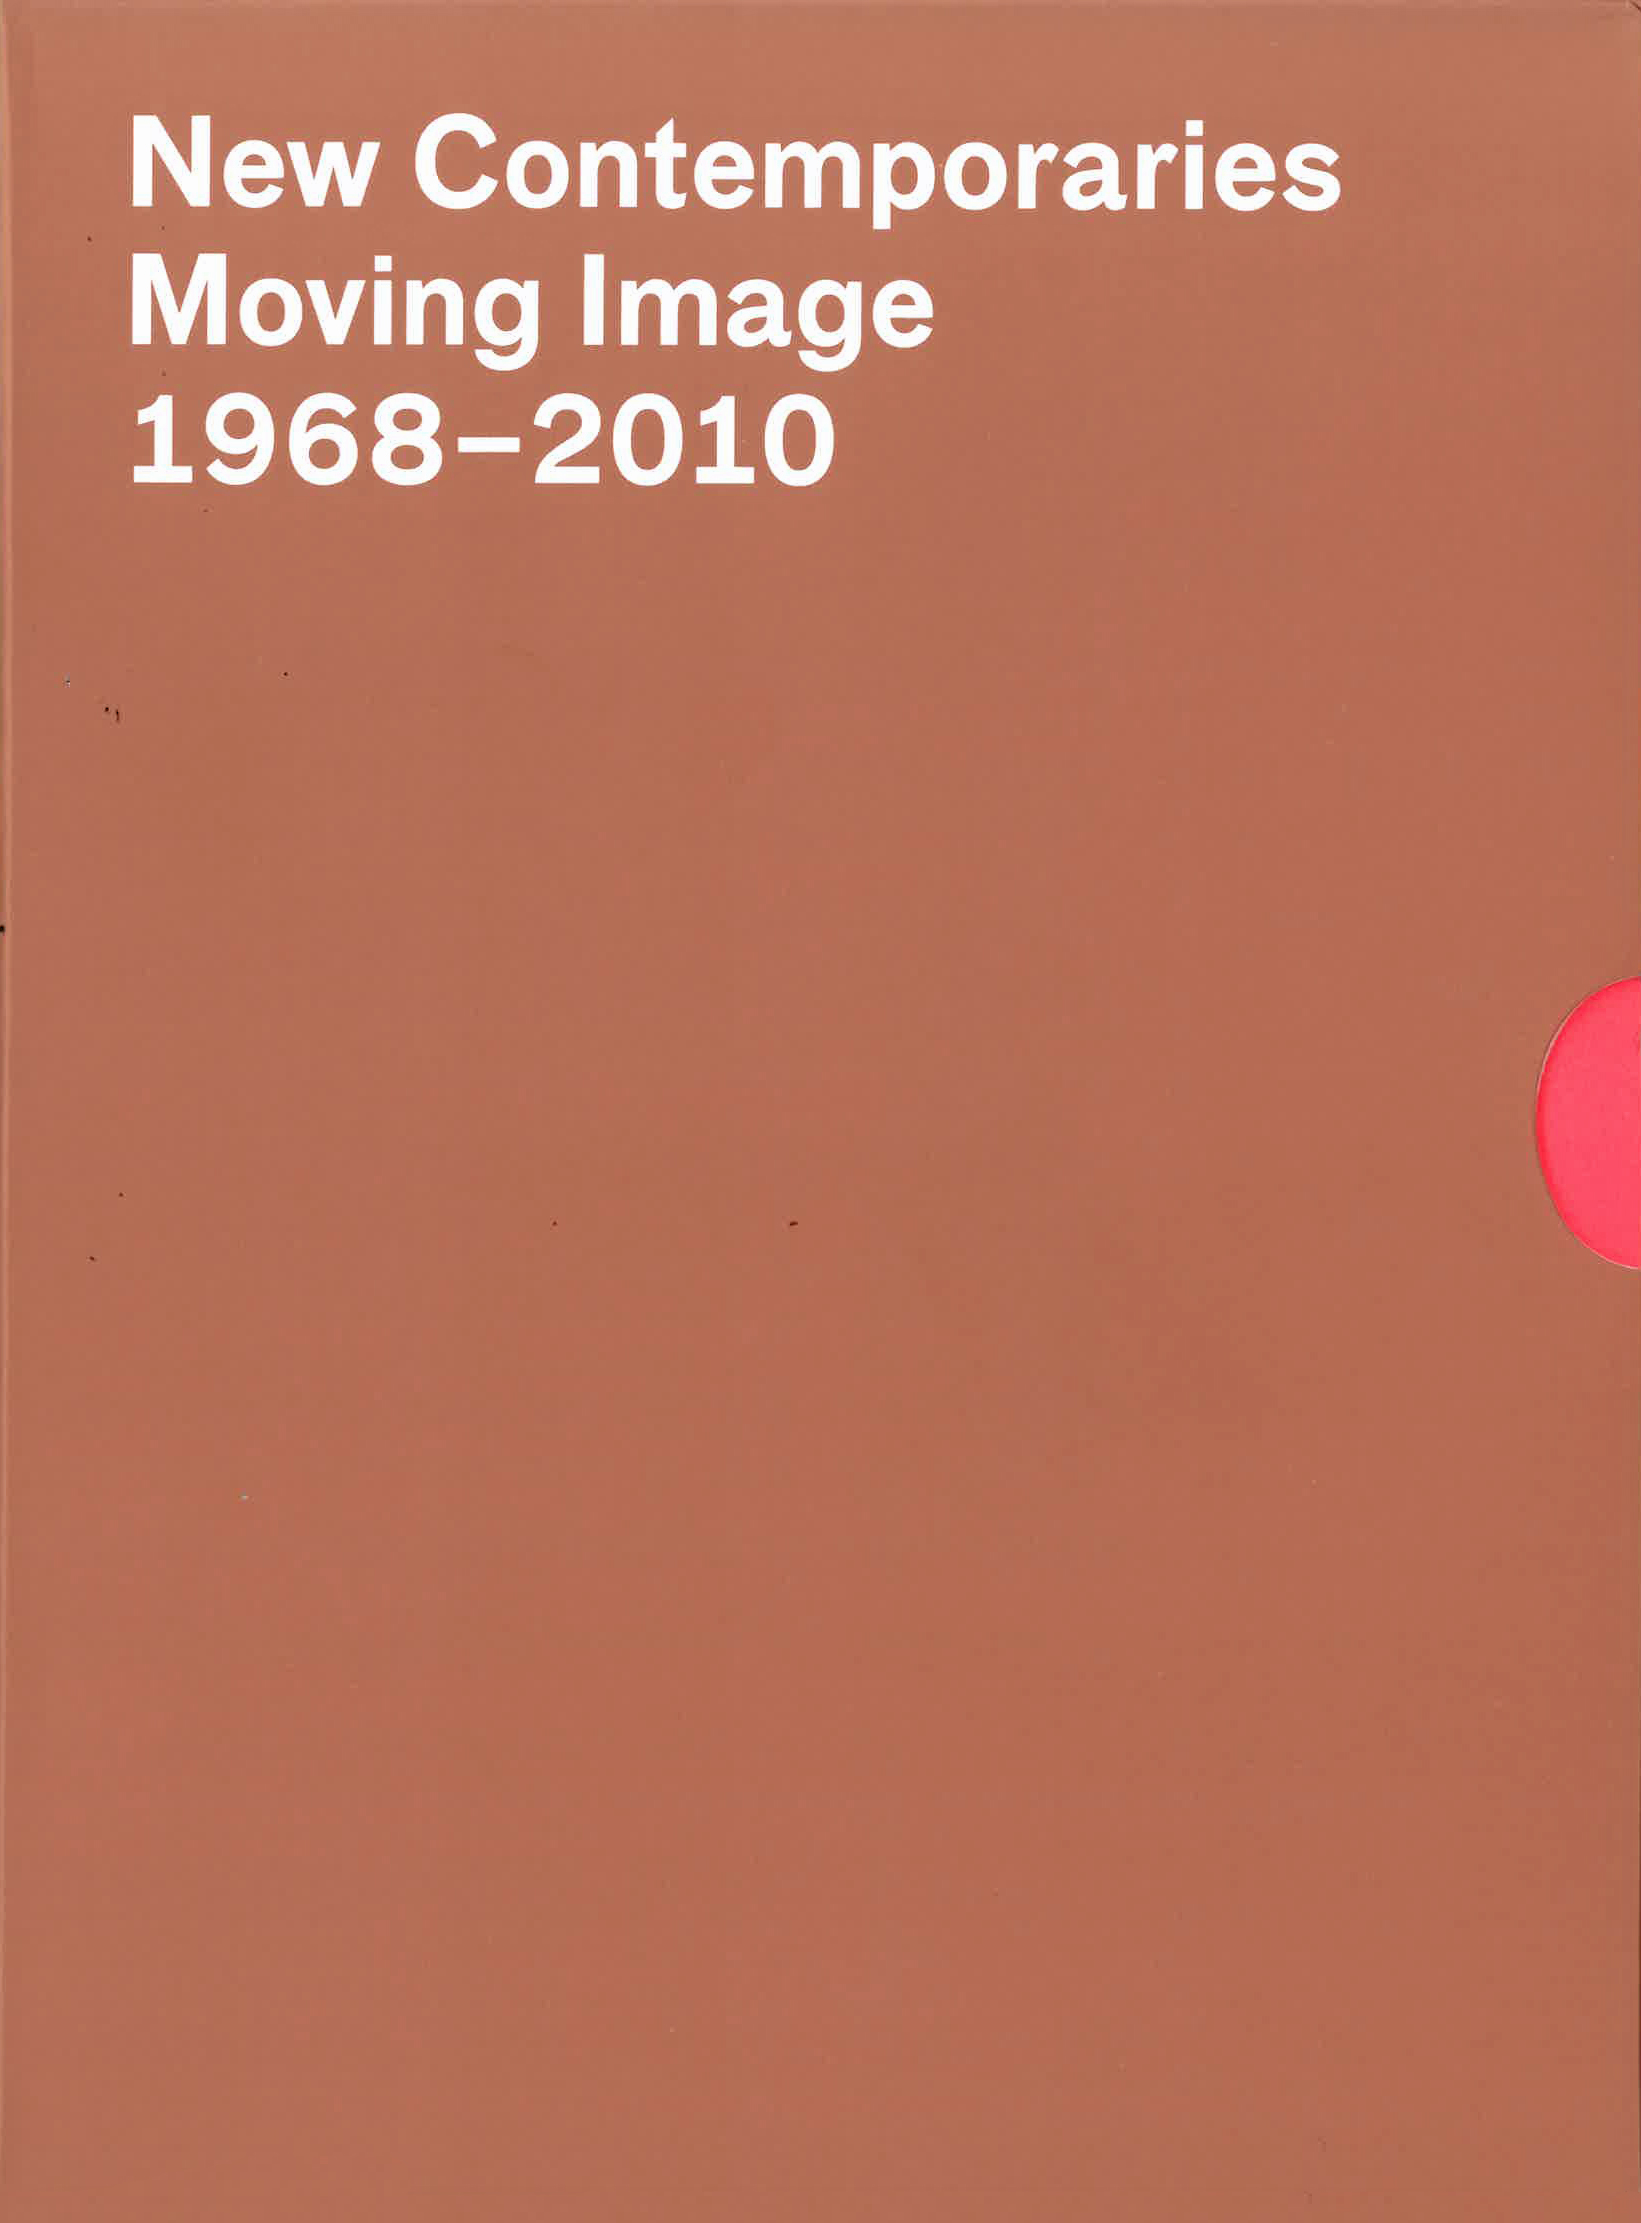 Buy New Contemporaries Moving Image 1968-2010